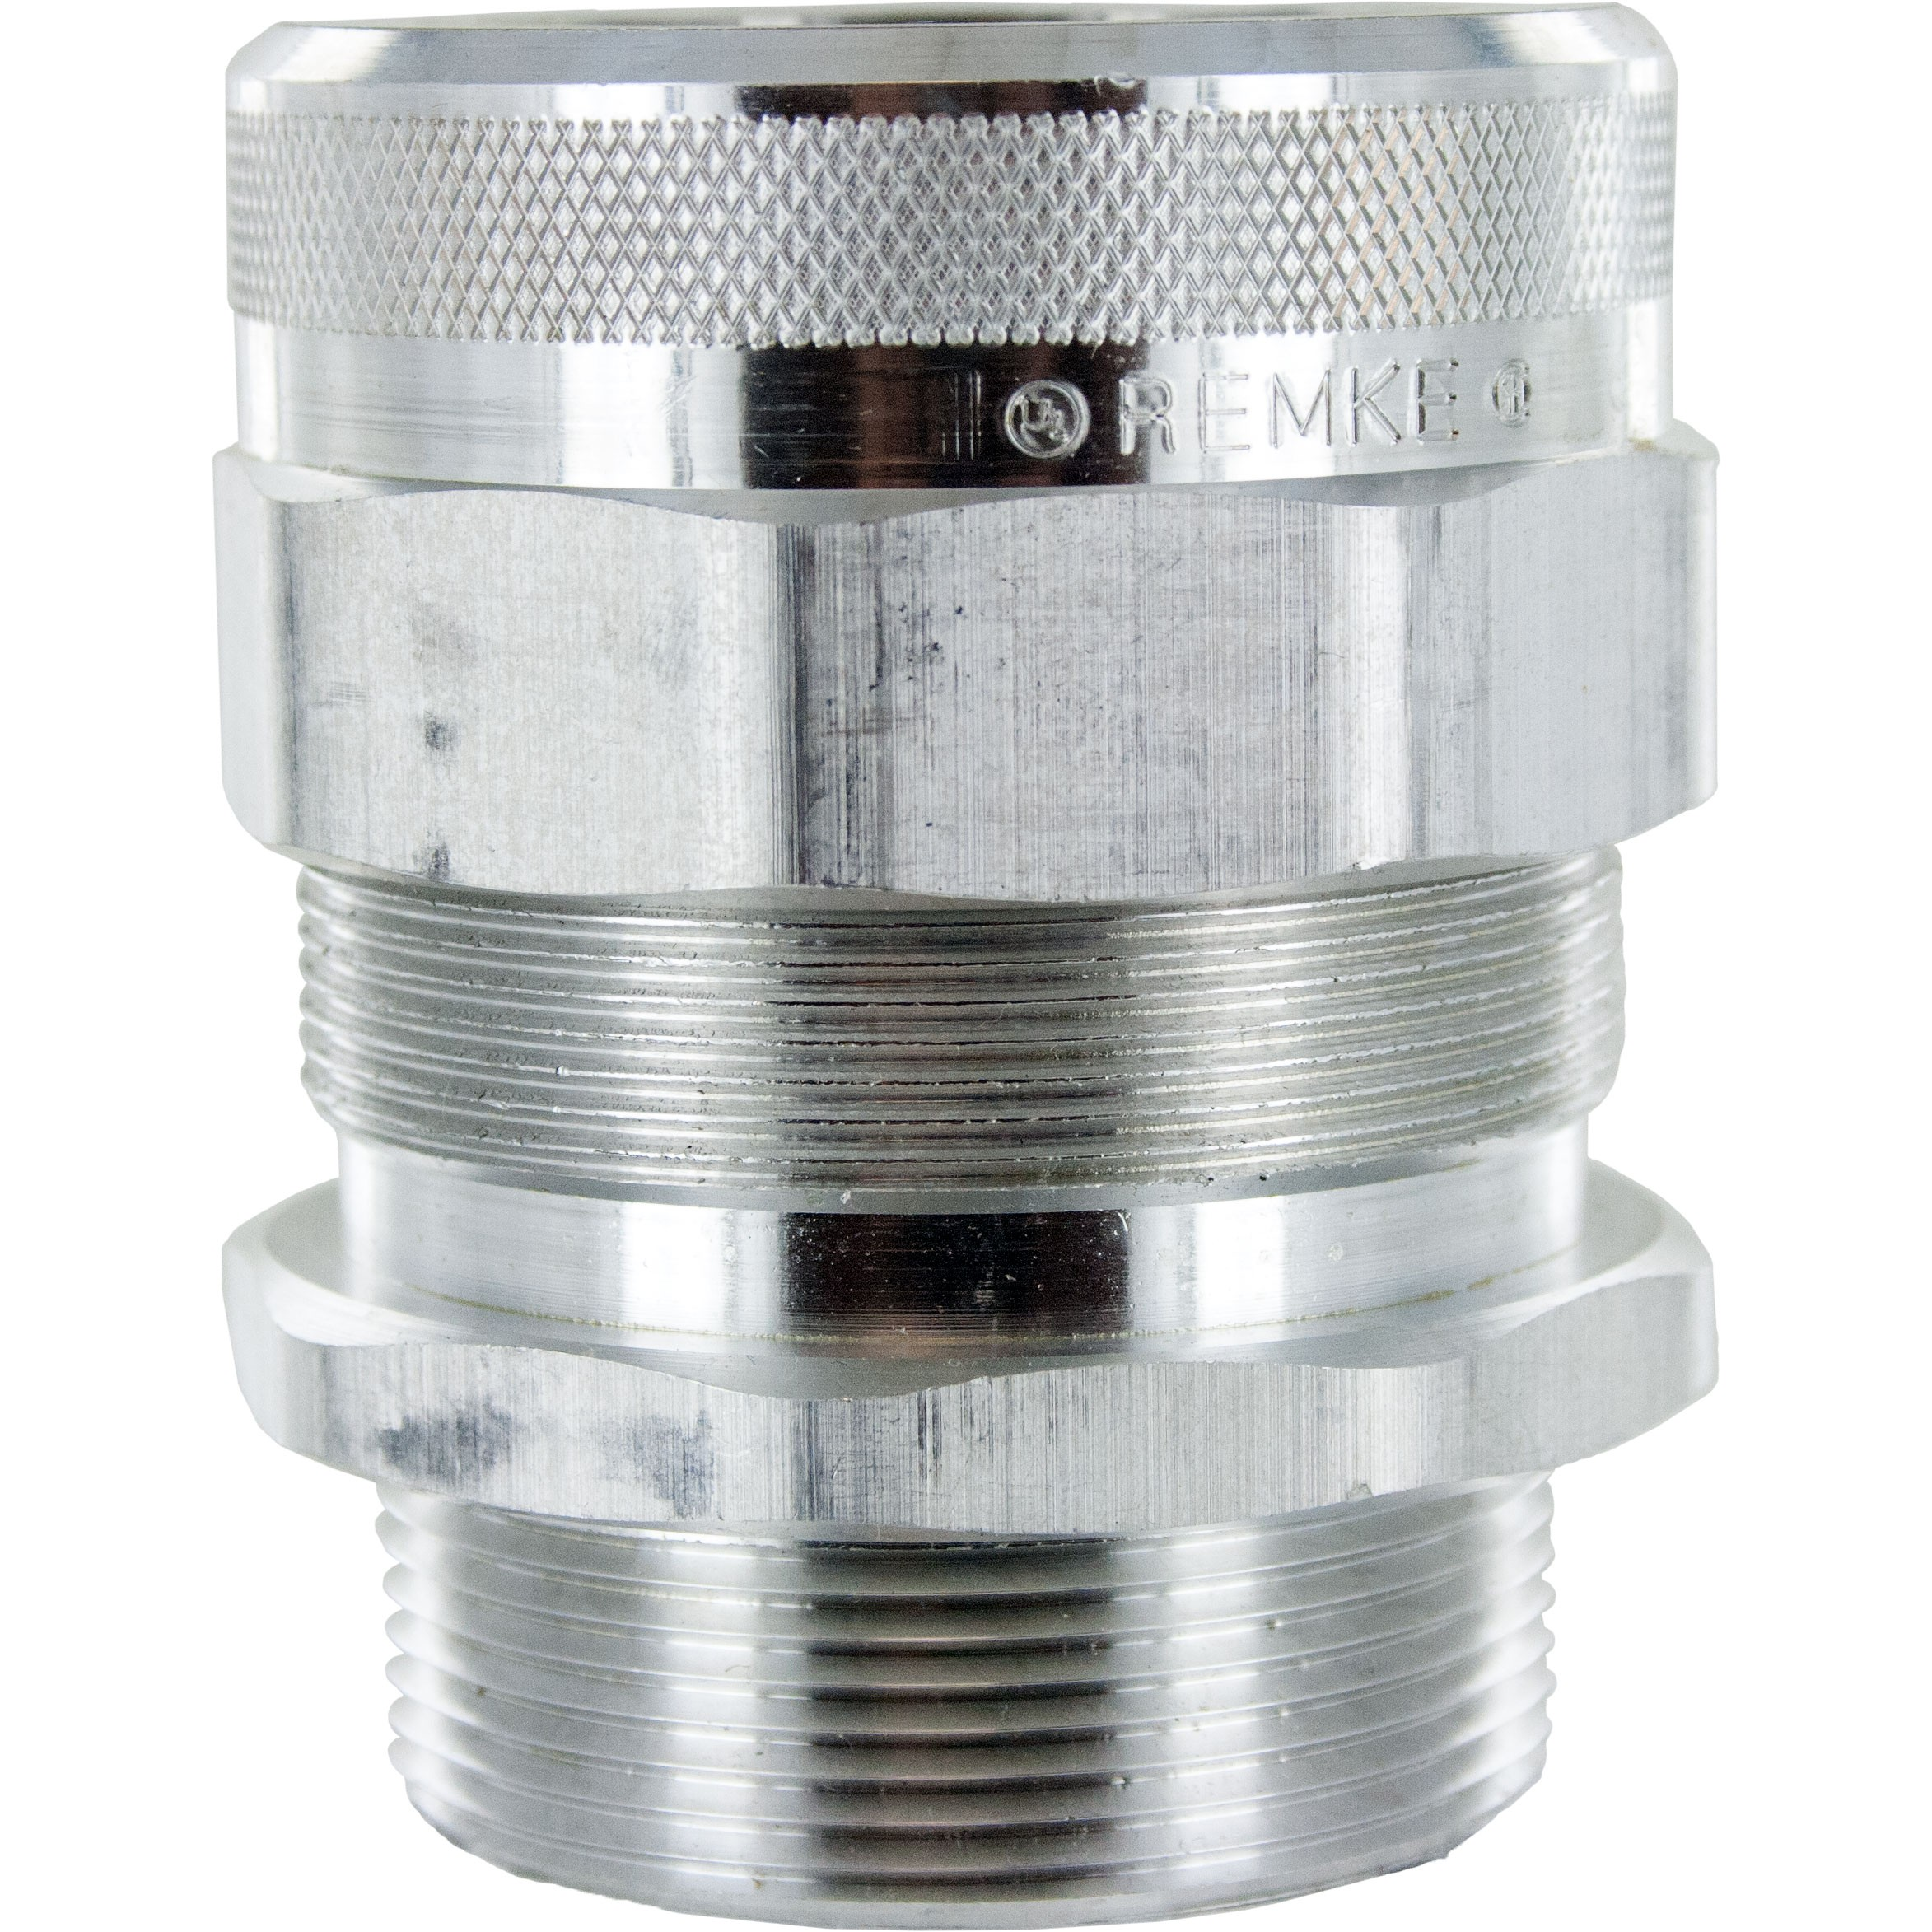 2 Npt Cord Grip Rsr 623 Elecdirect Pollak Lightduty Toggle Switch Onoff 12 Volt 10 Amp 6quot Wire Aluminum 1312 1437